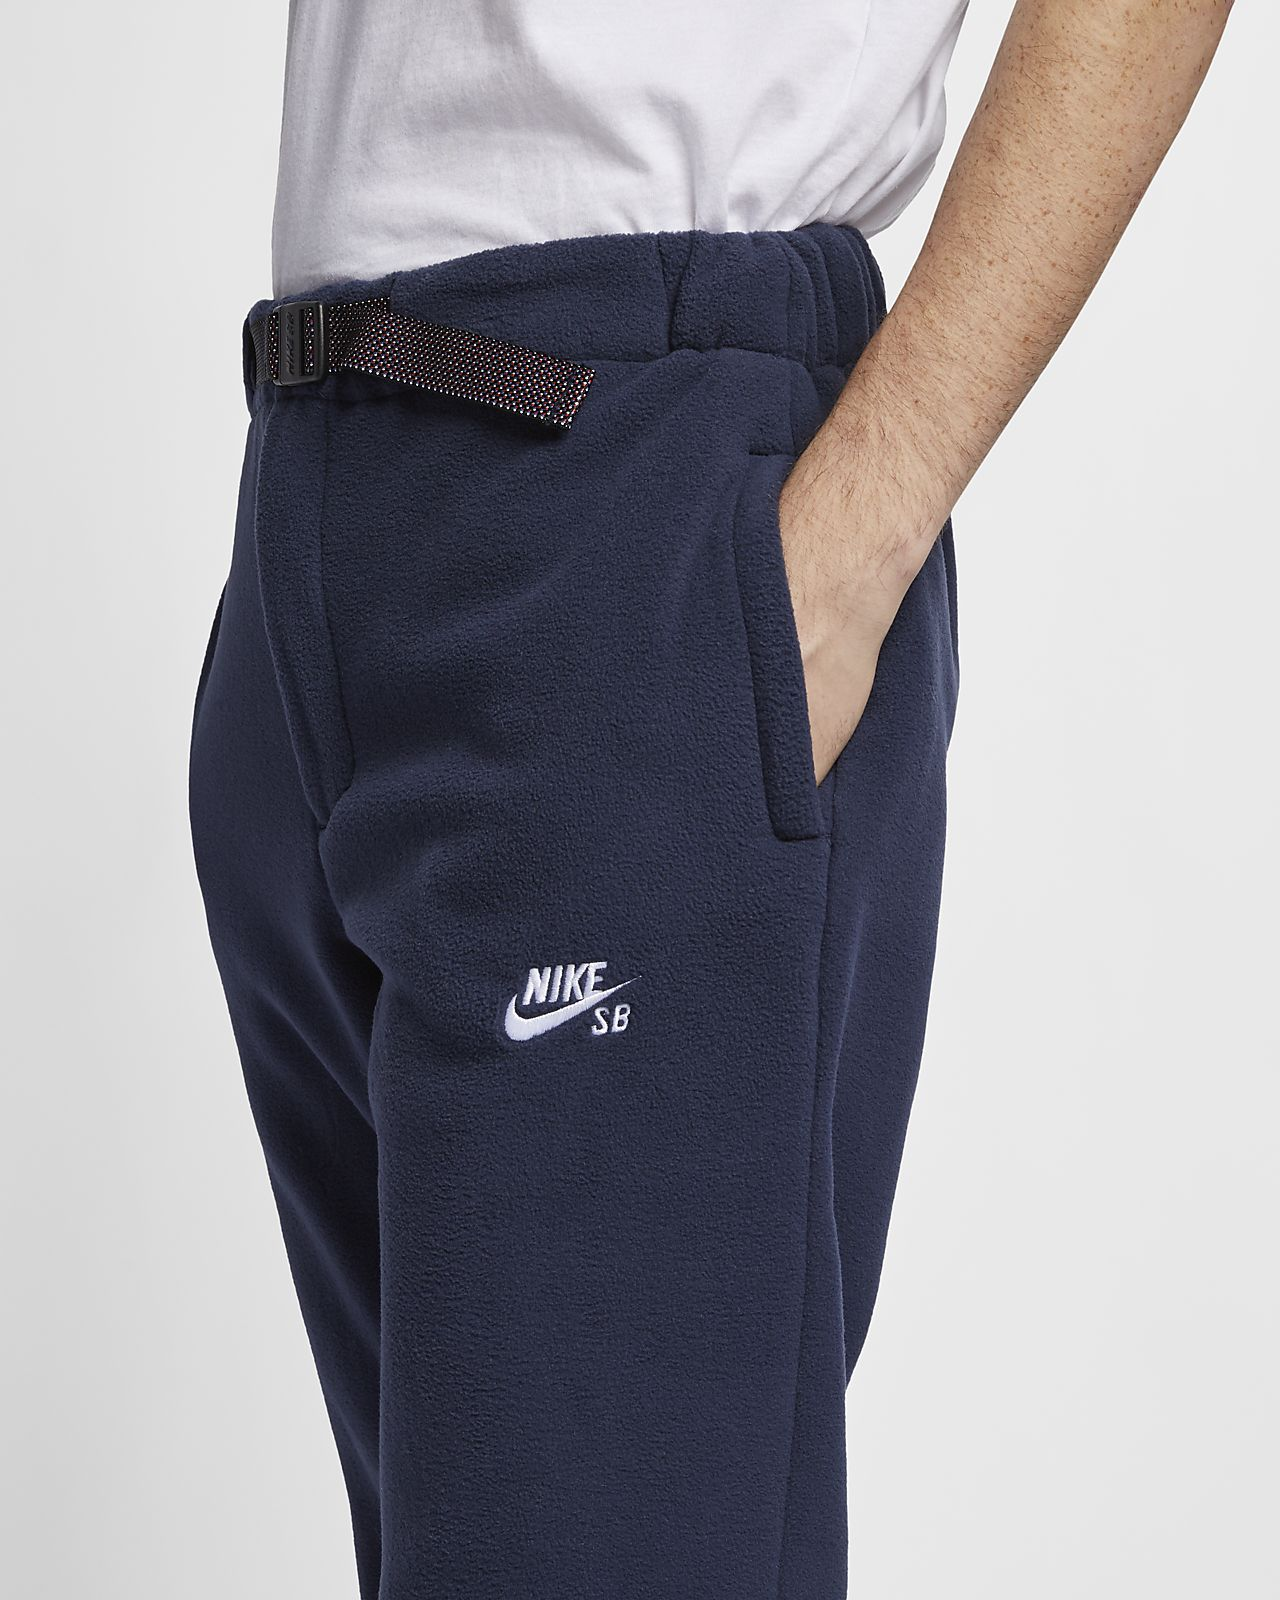 35d68797d7179 Low Resolution Nike SB Men's Skateboarding Trousers Nike SB Men's Skateboarding  Trousers